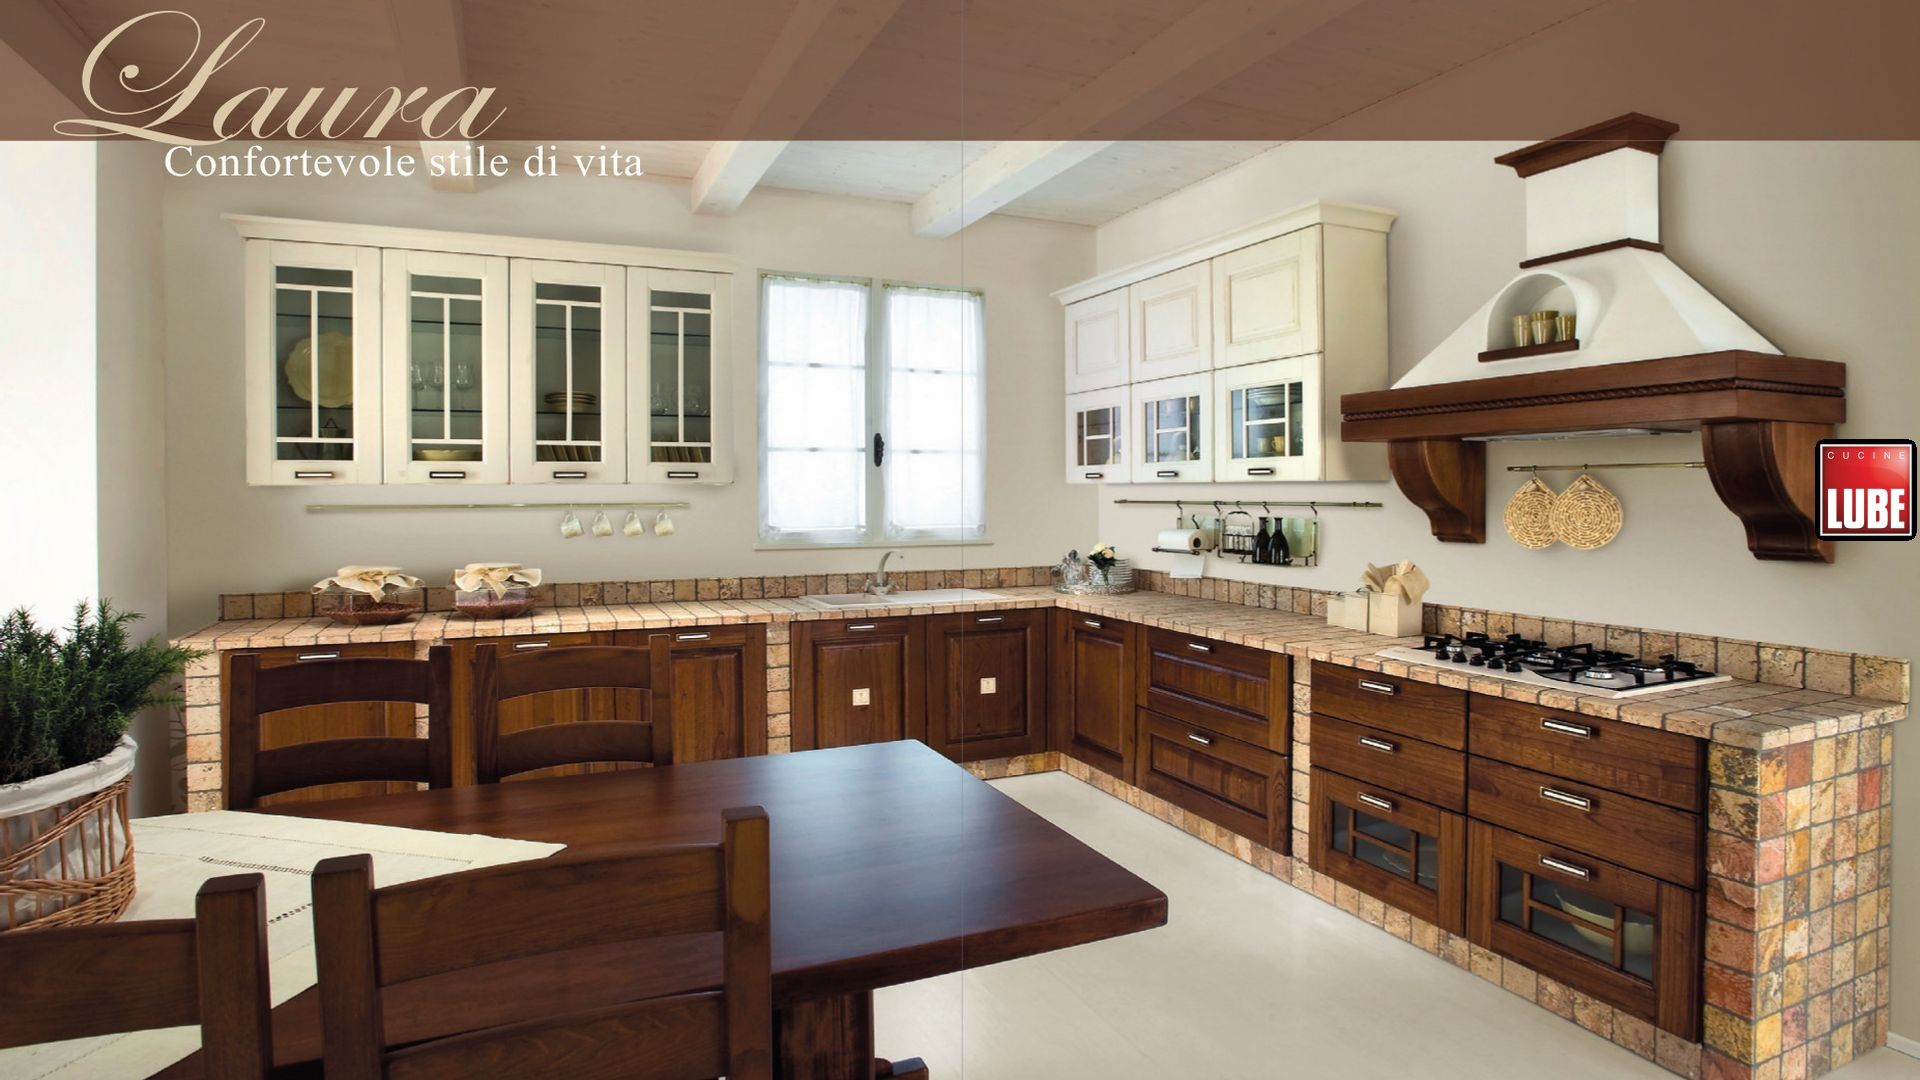 Cucine Rustiche Cucina Laura Kitchen Design Beautiful Kitchens